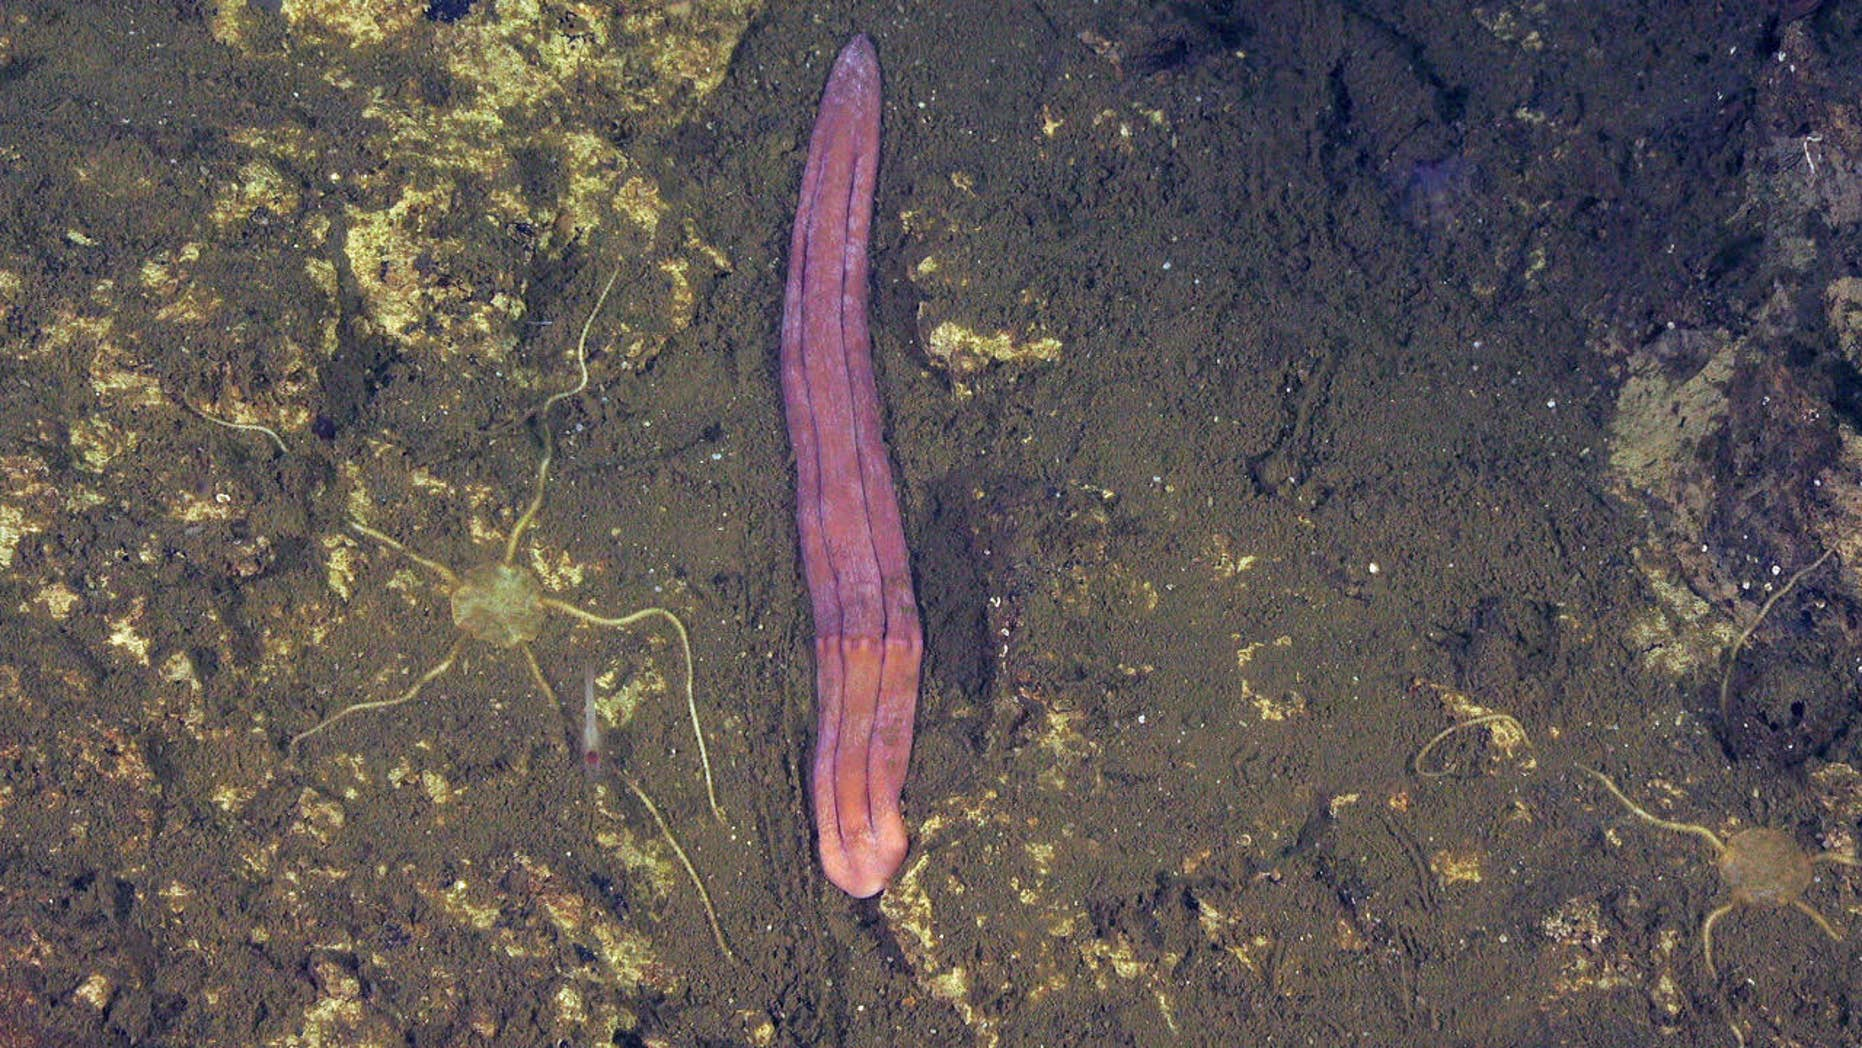 A new class of Xenoturbella was detected in Costa Rica during a new expedition.